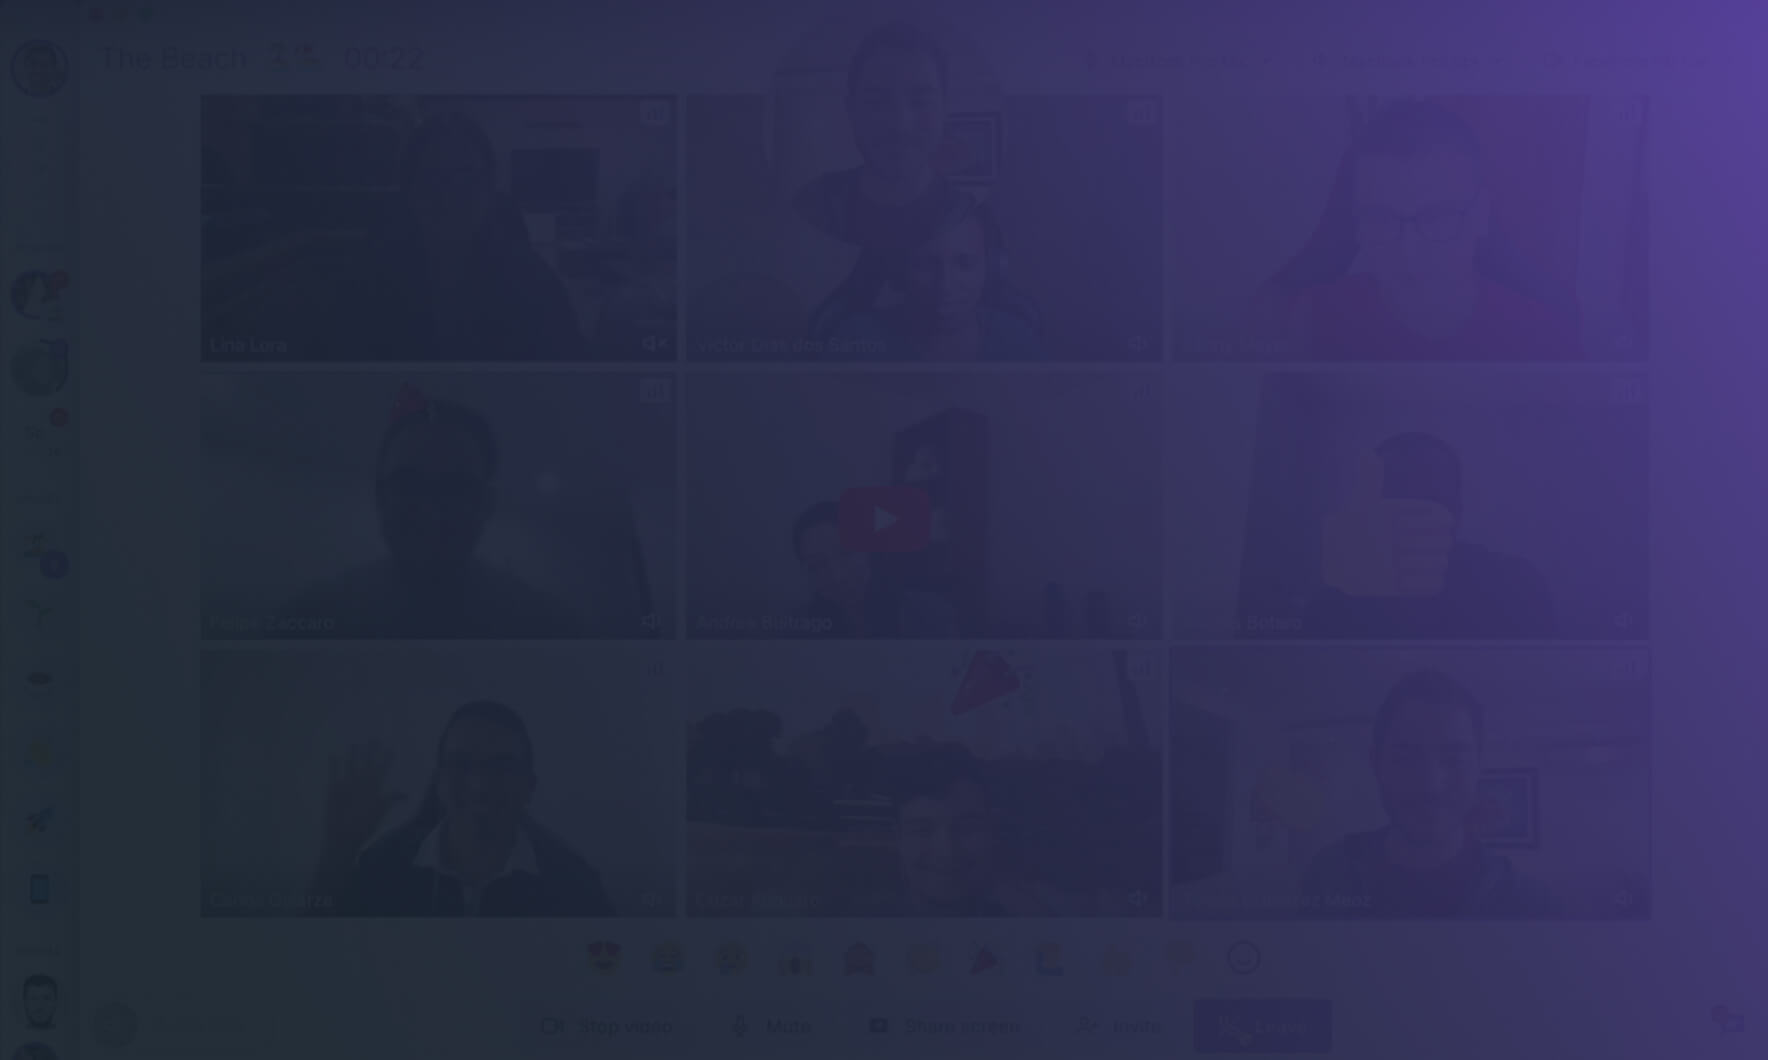 Video background placeholder